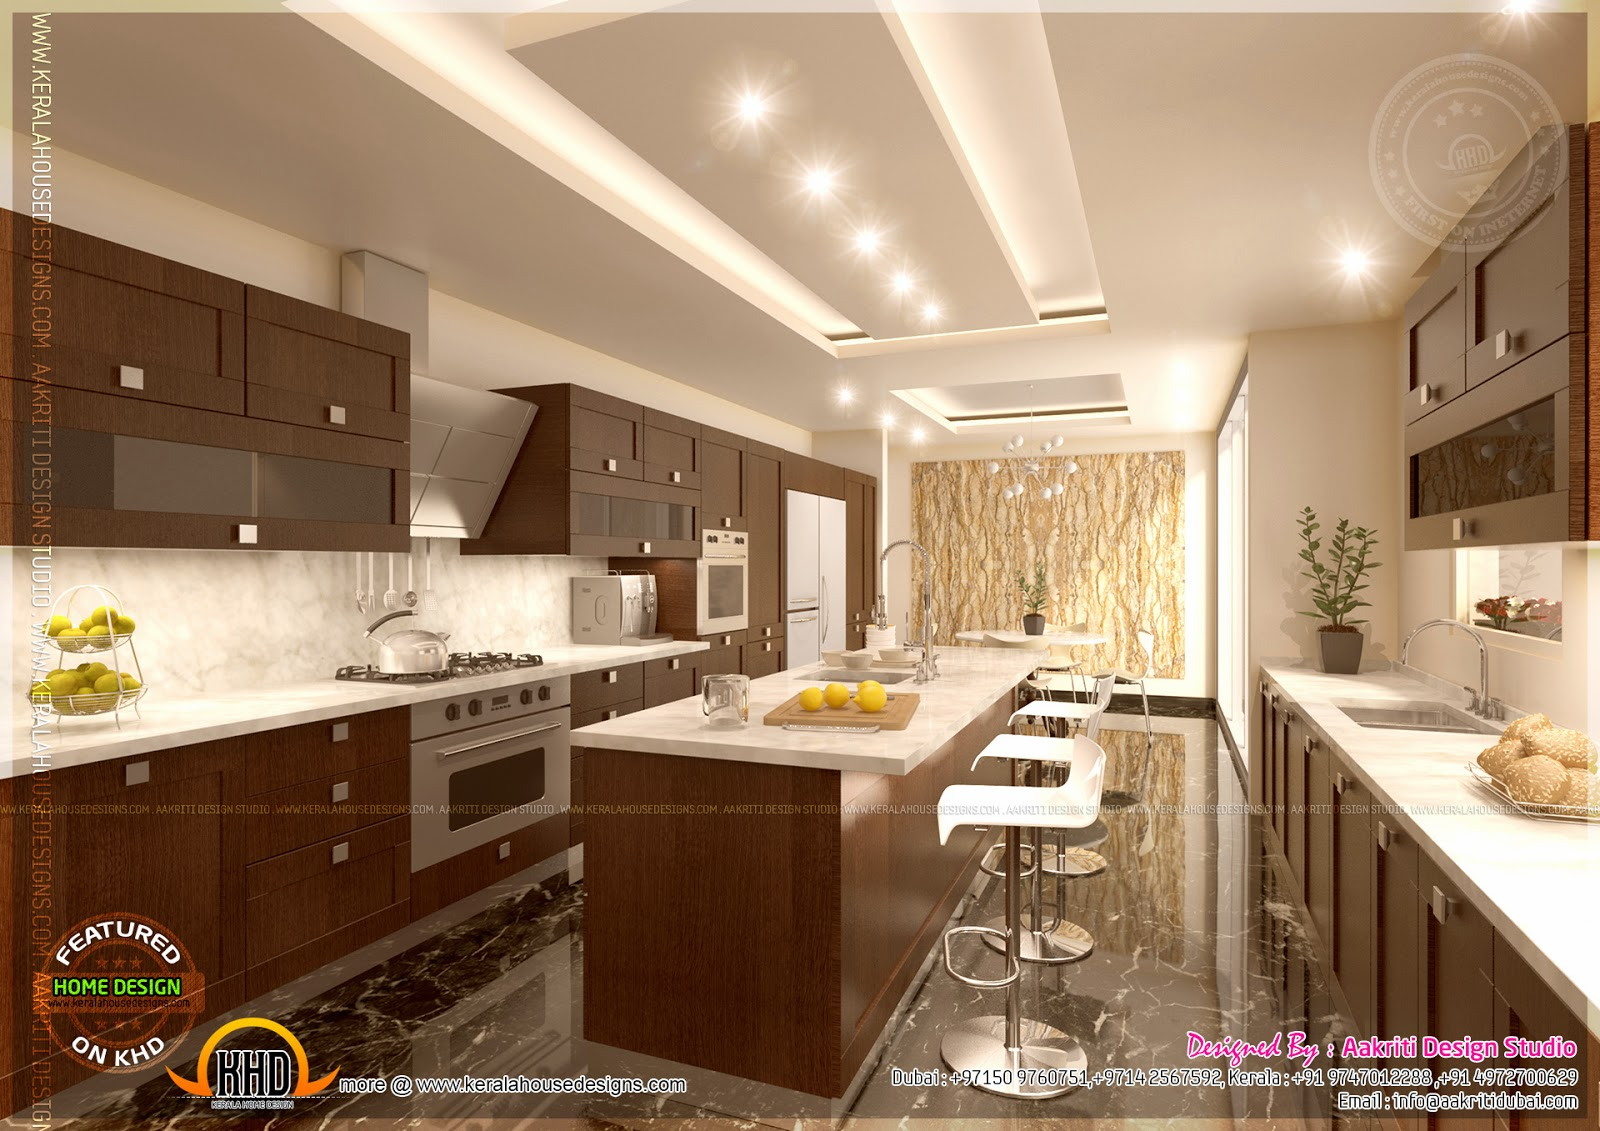 Kitchen designs by aakriti design studio kerala home for Kitchen plans and designs